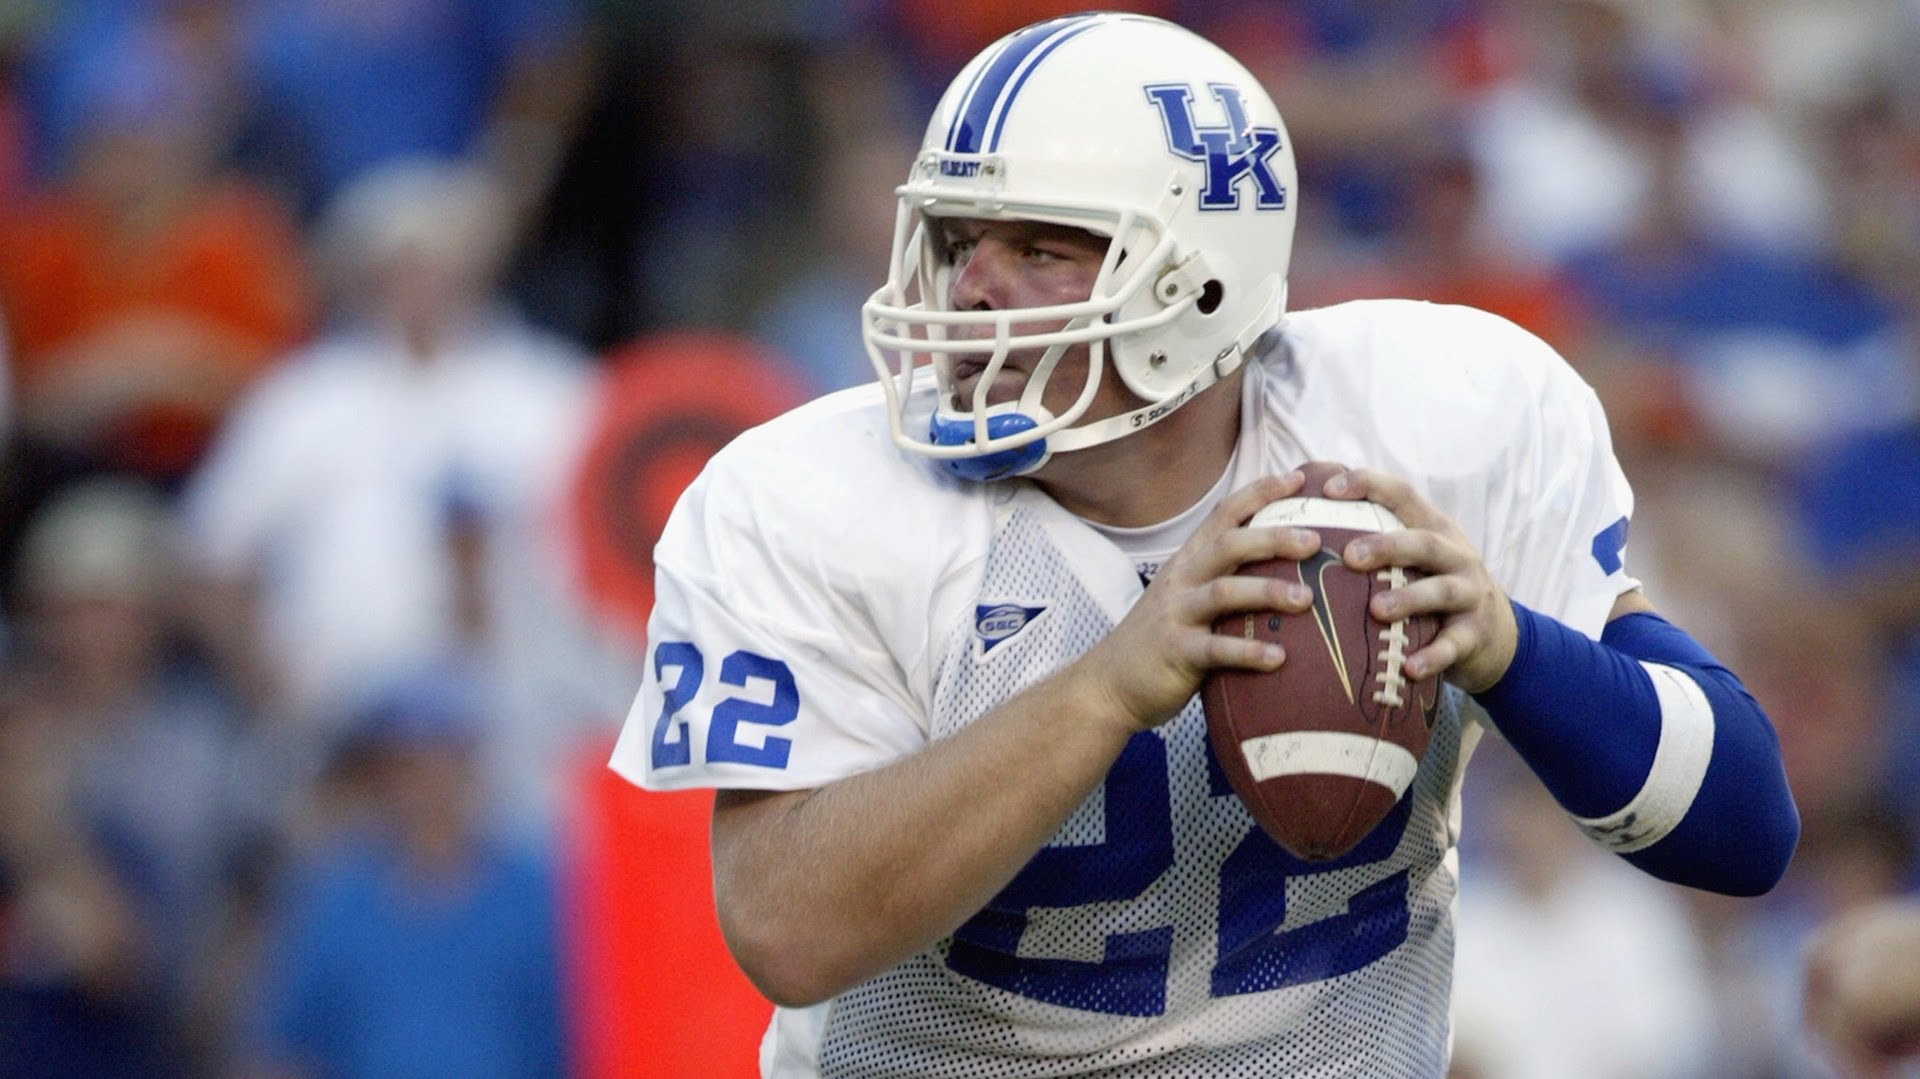 Jared Lorenzen - Kentucky football